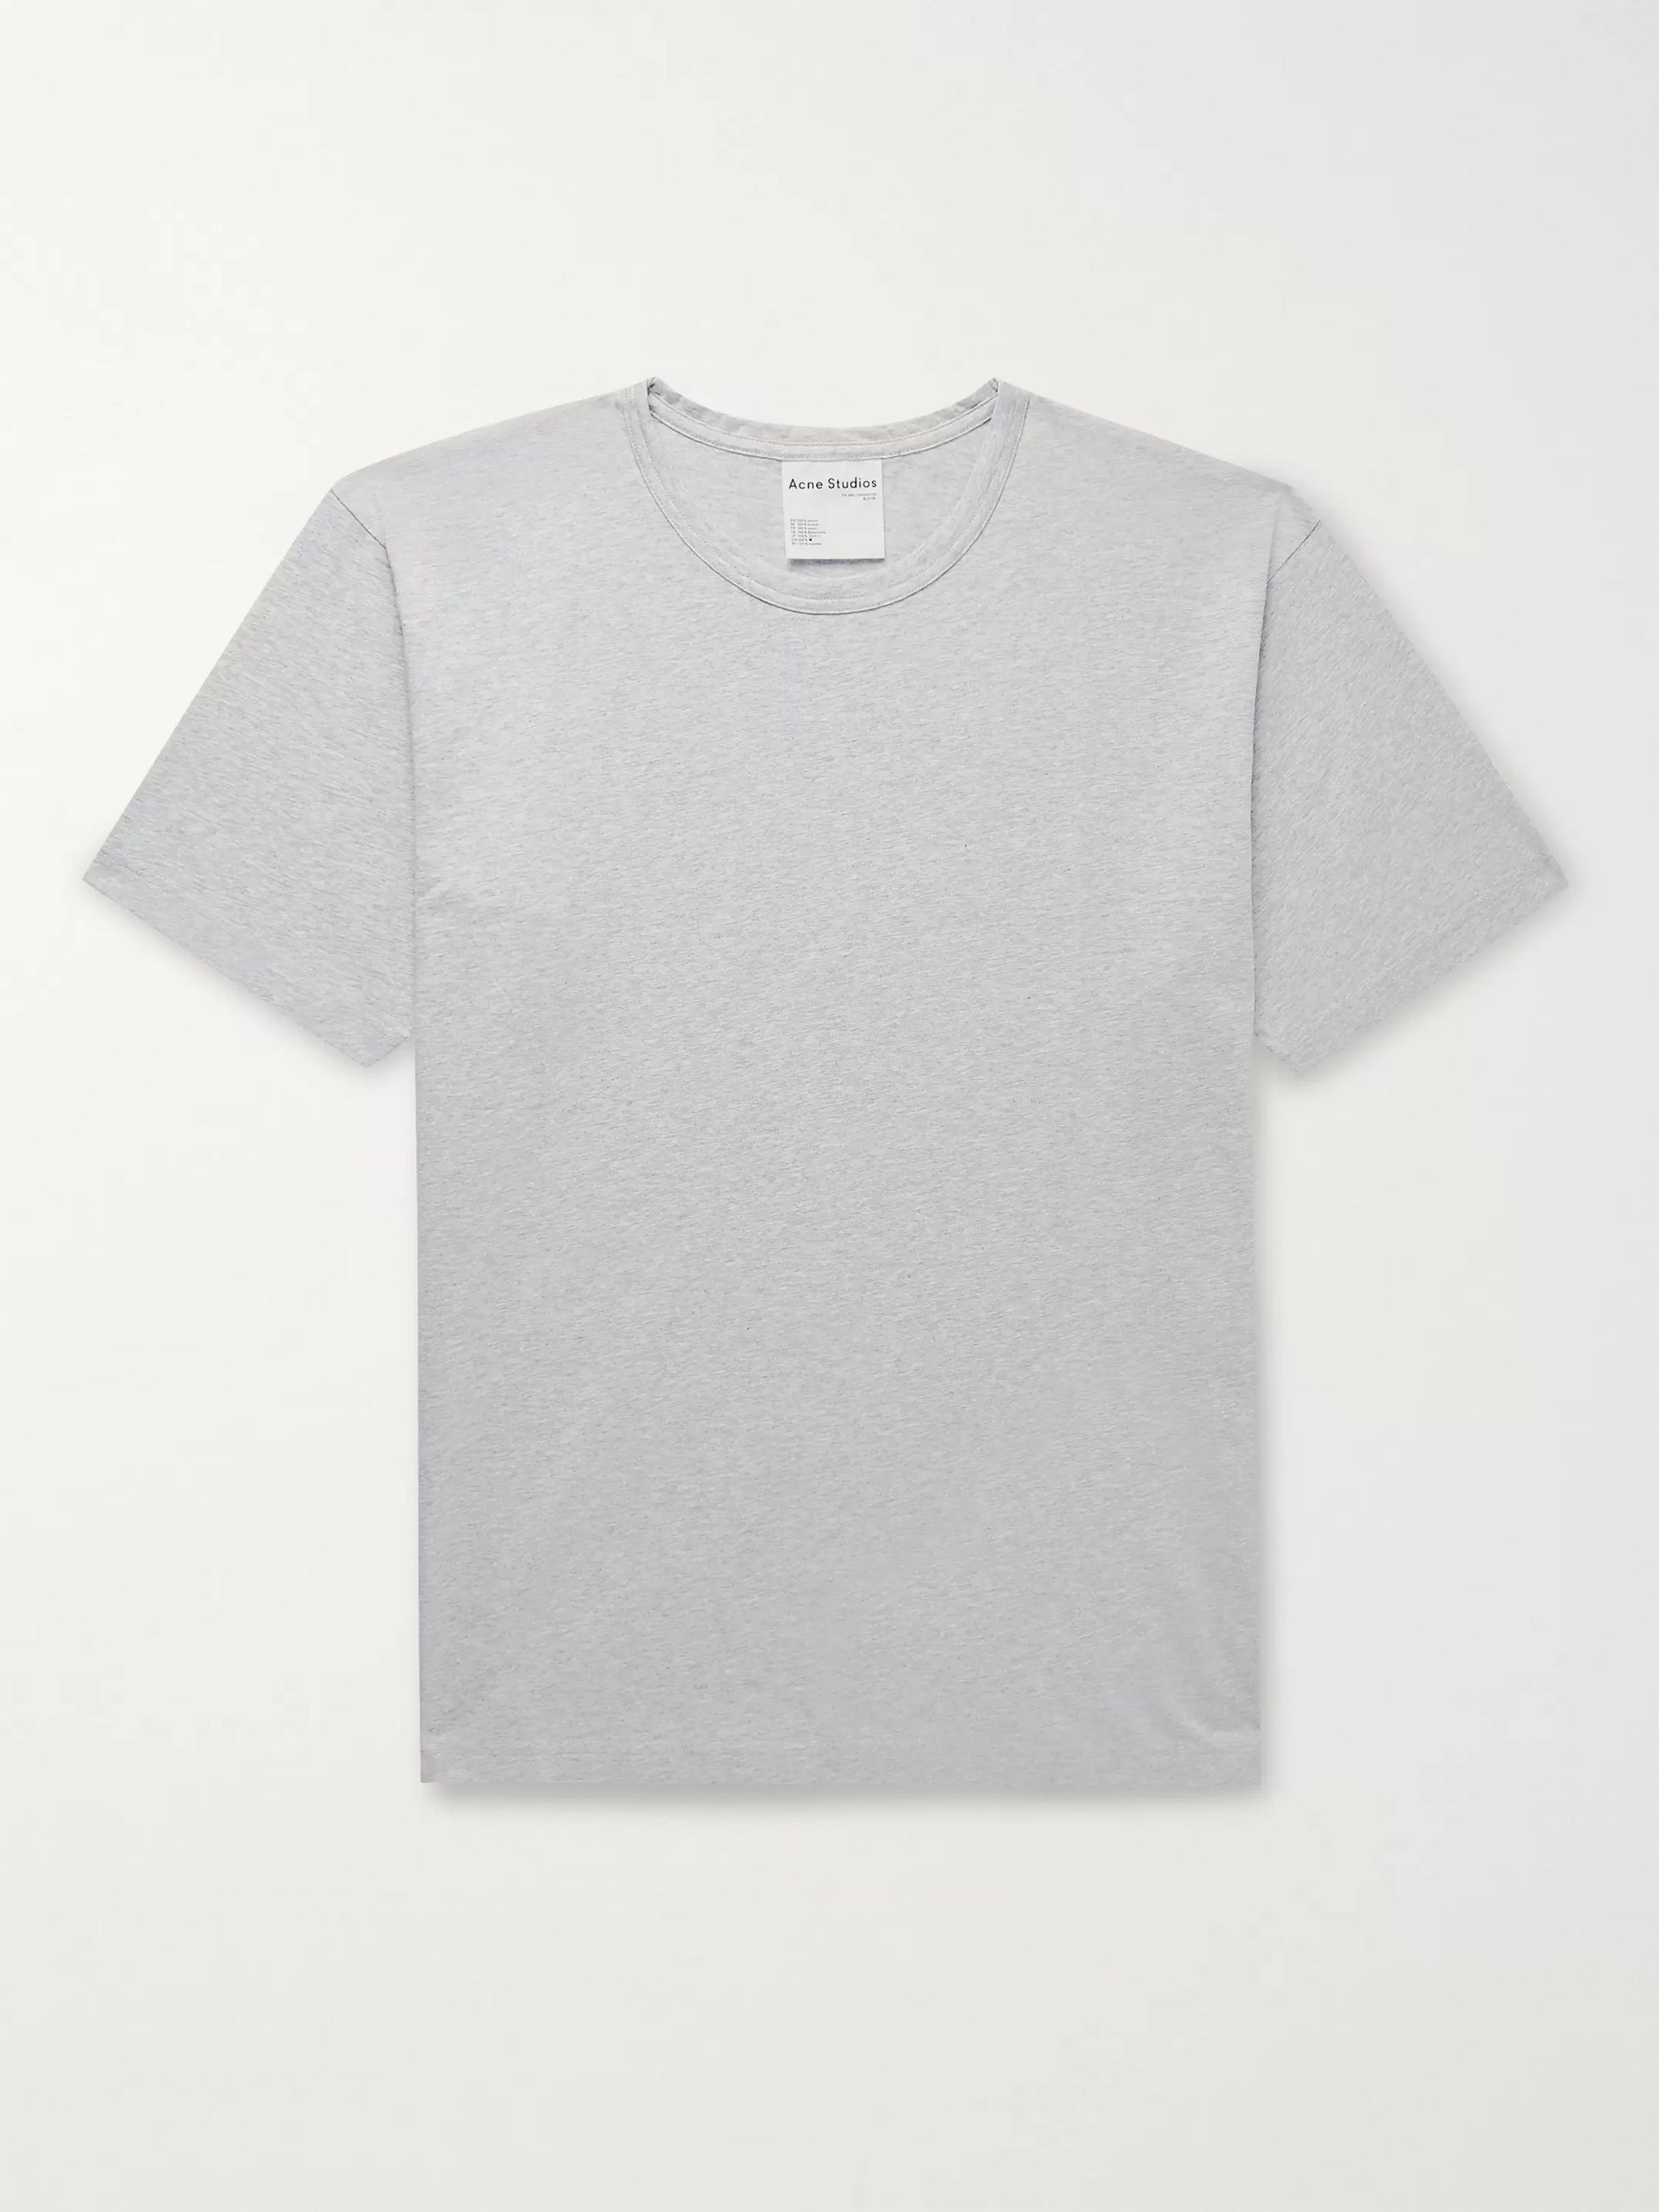 Acne Studios Mélange Cotton-Jersey T-Shirt